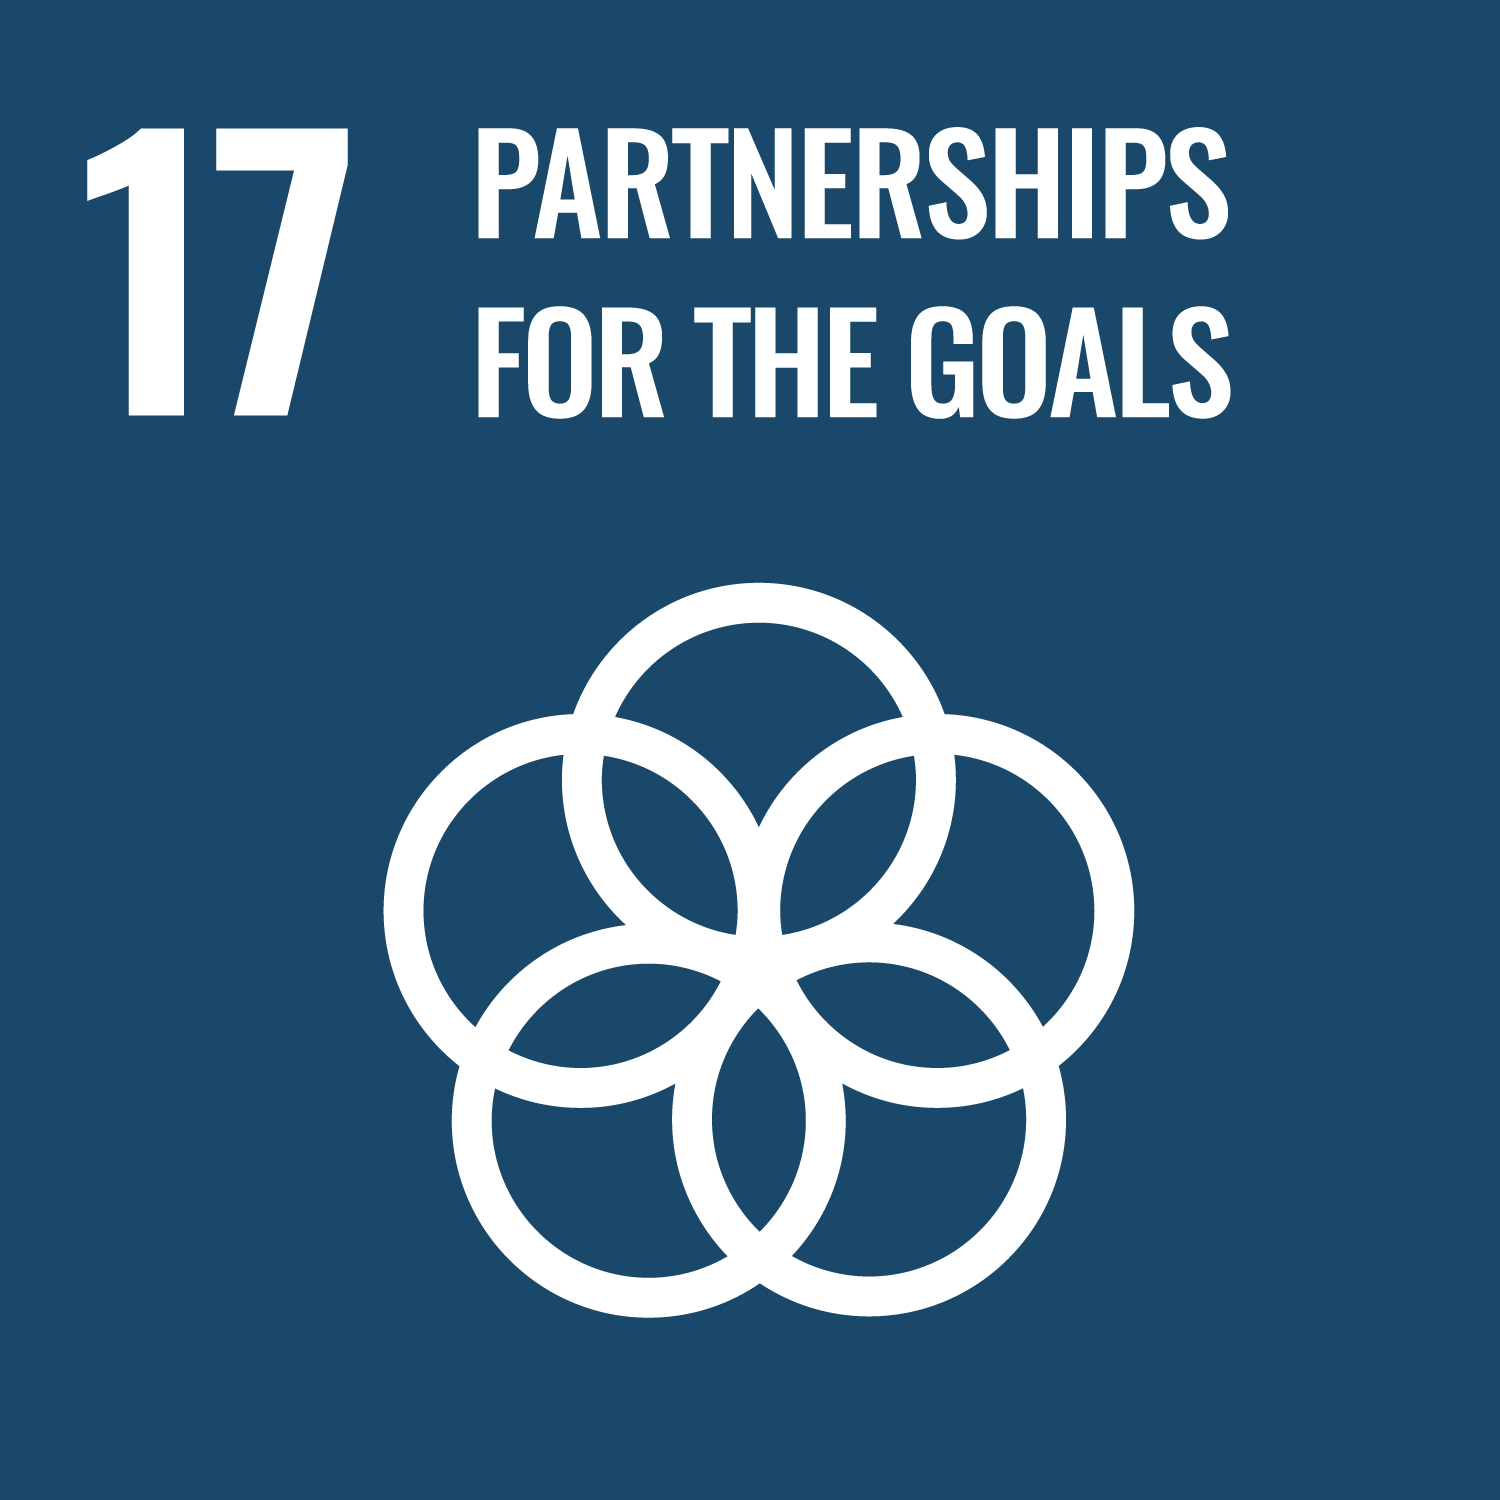 Partnerships For The Goals – UN Sustainable Development Goal 17